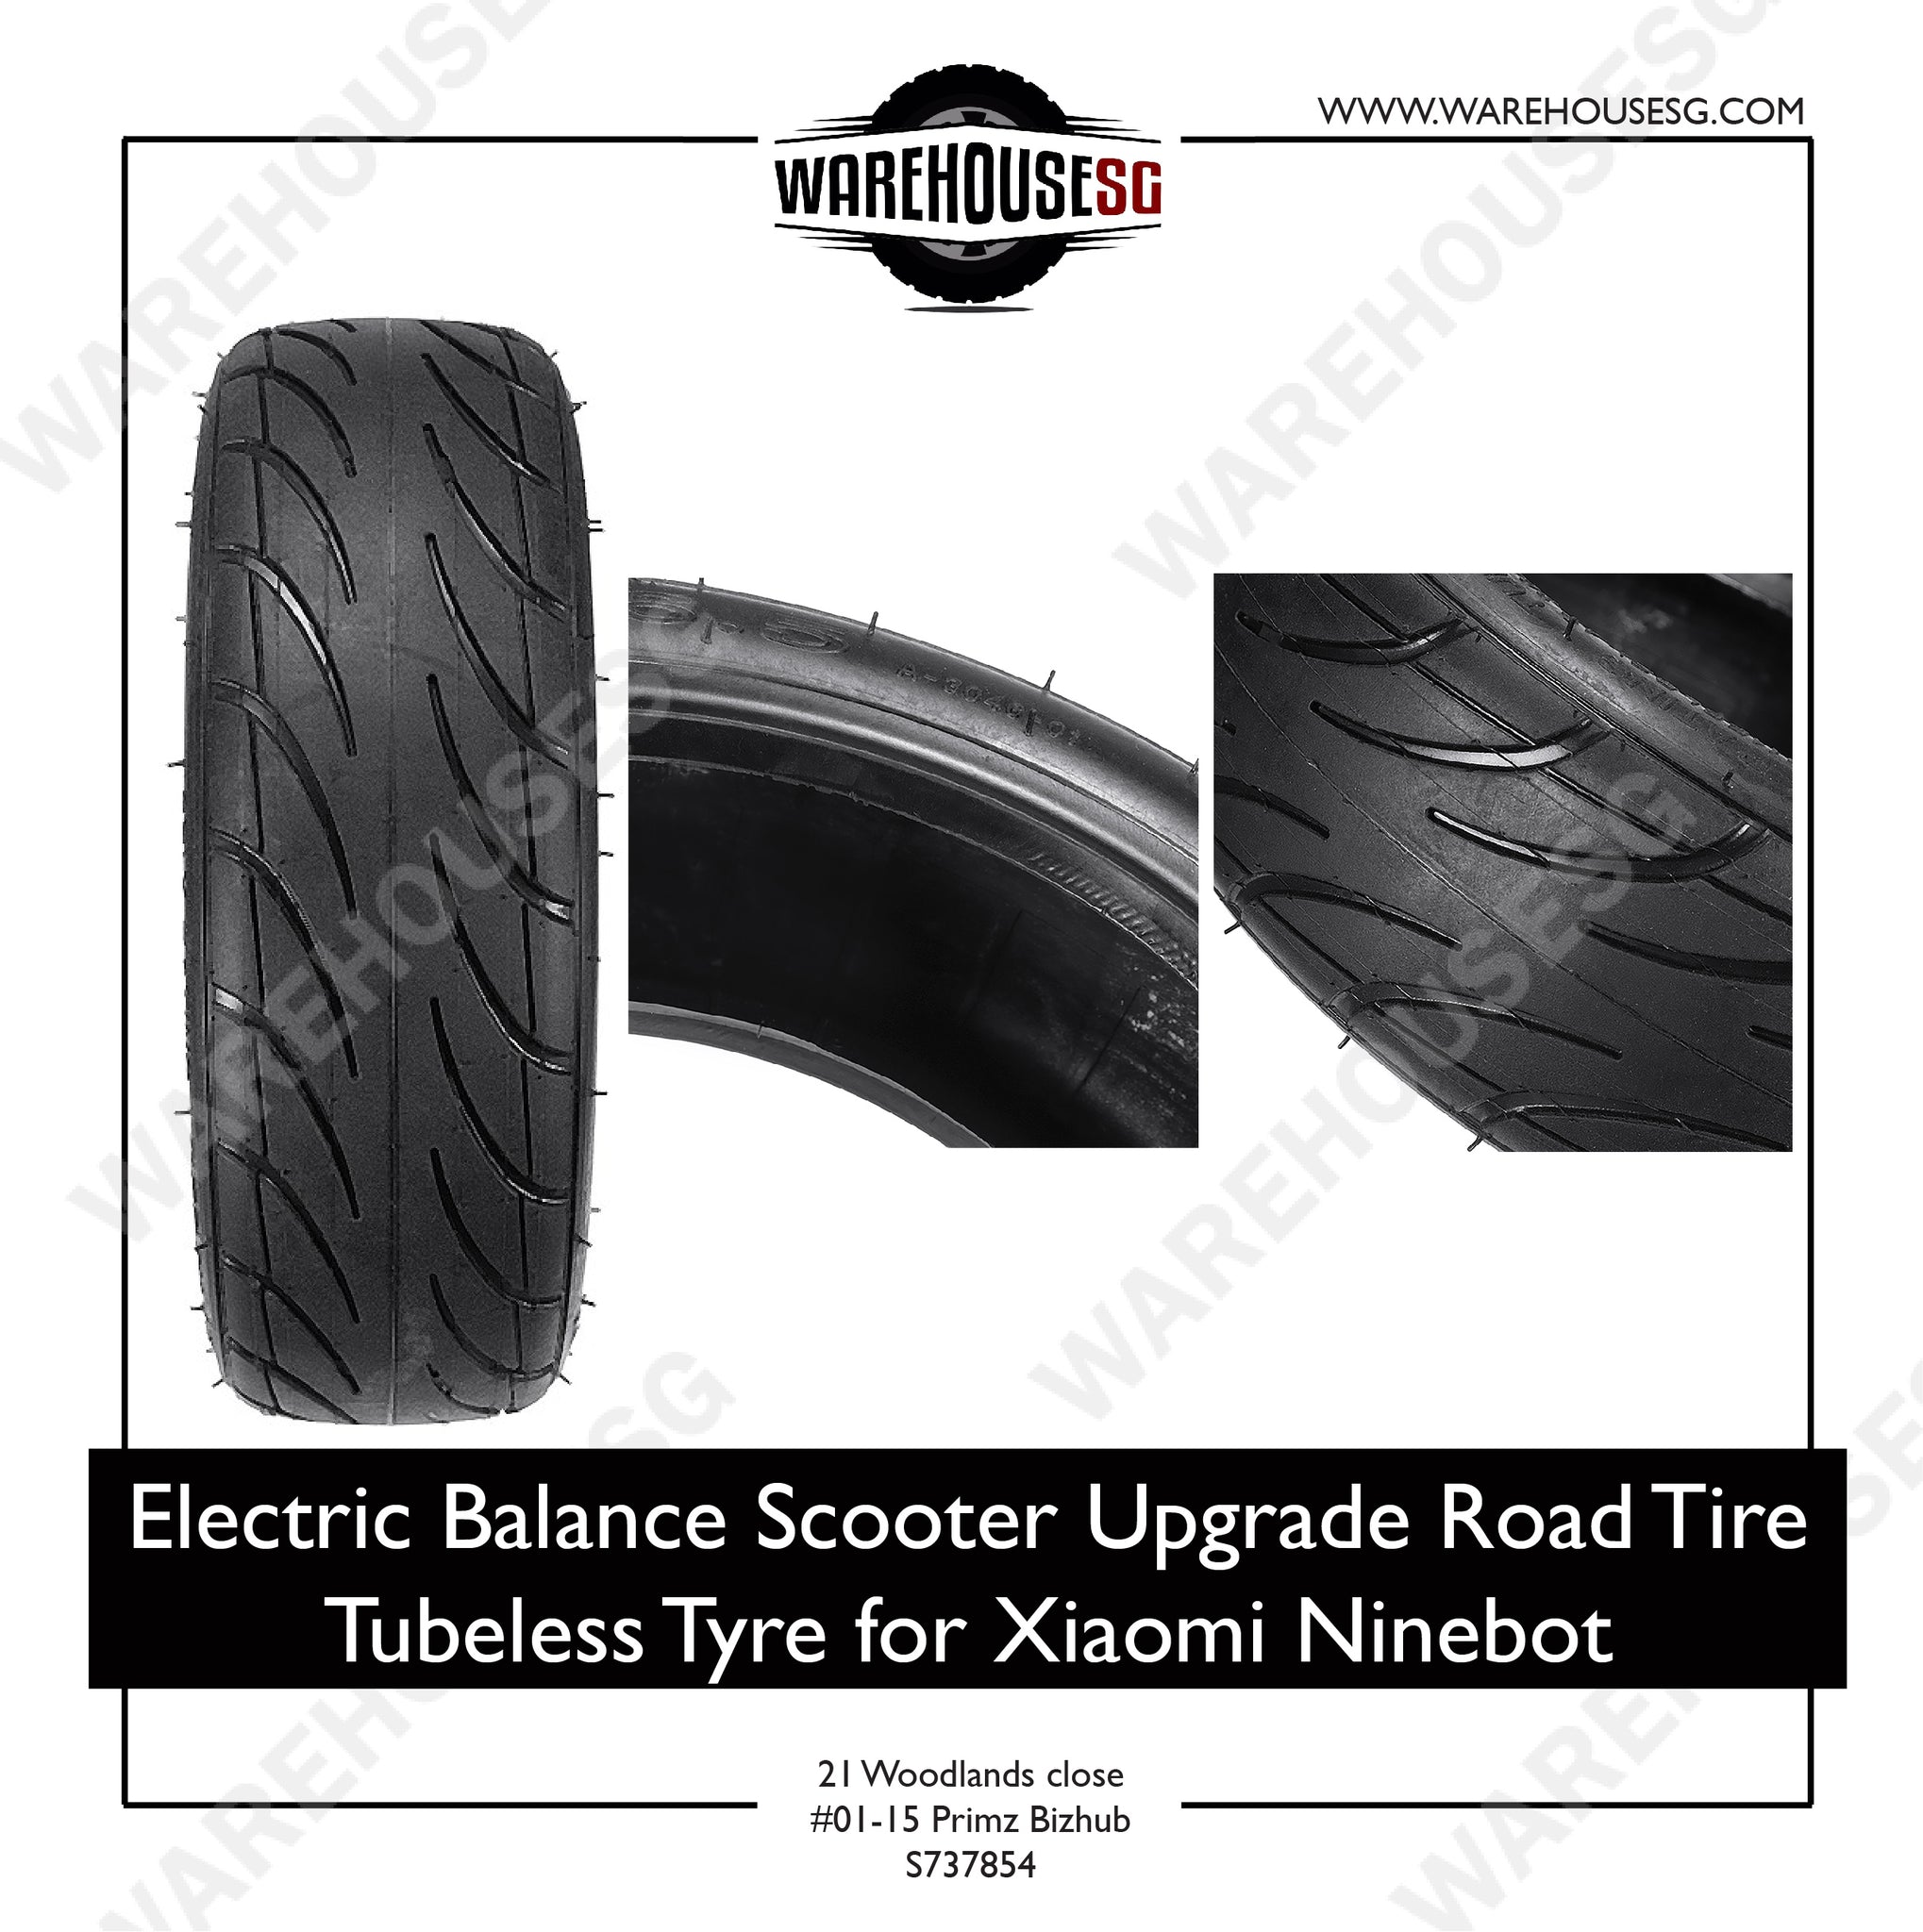 Electric Balance Scooter Upgrade Road Tire Tubeless Tyre for Ninebot 70/65-6.5